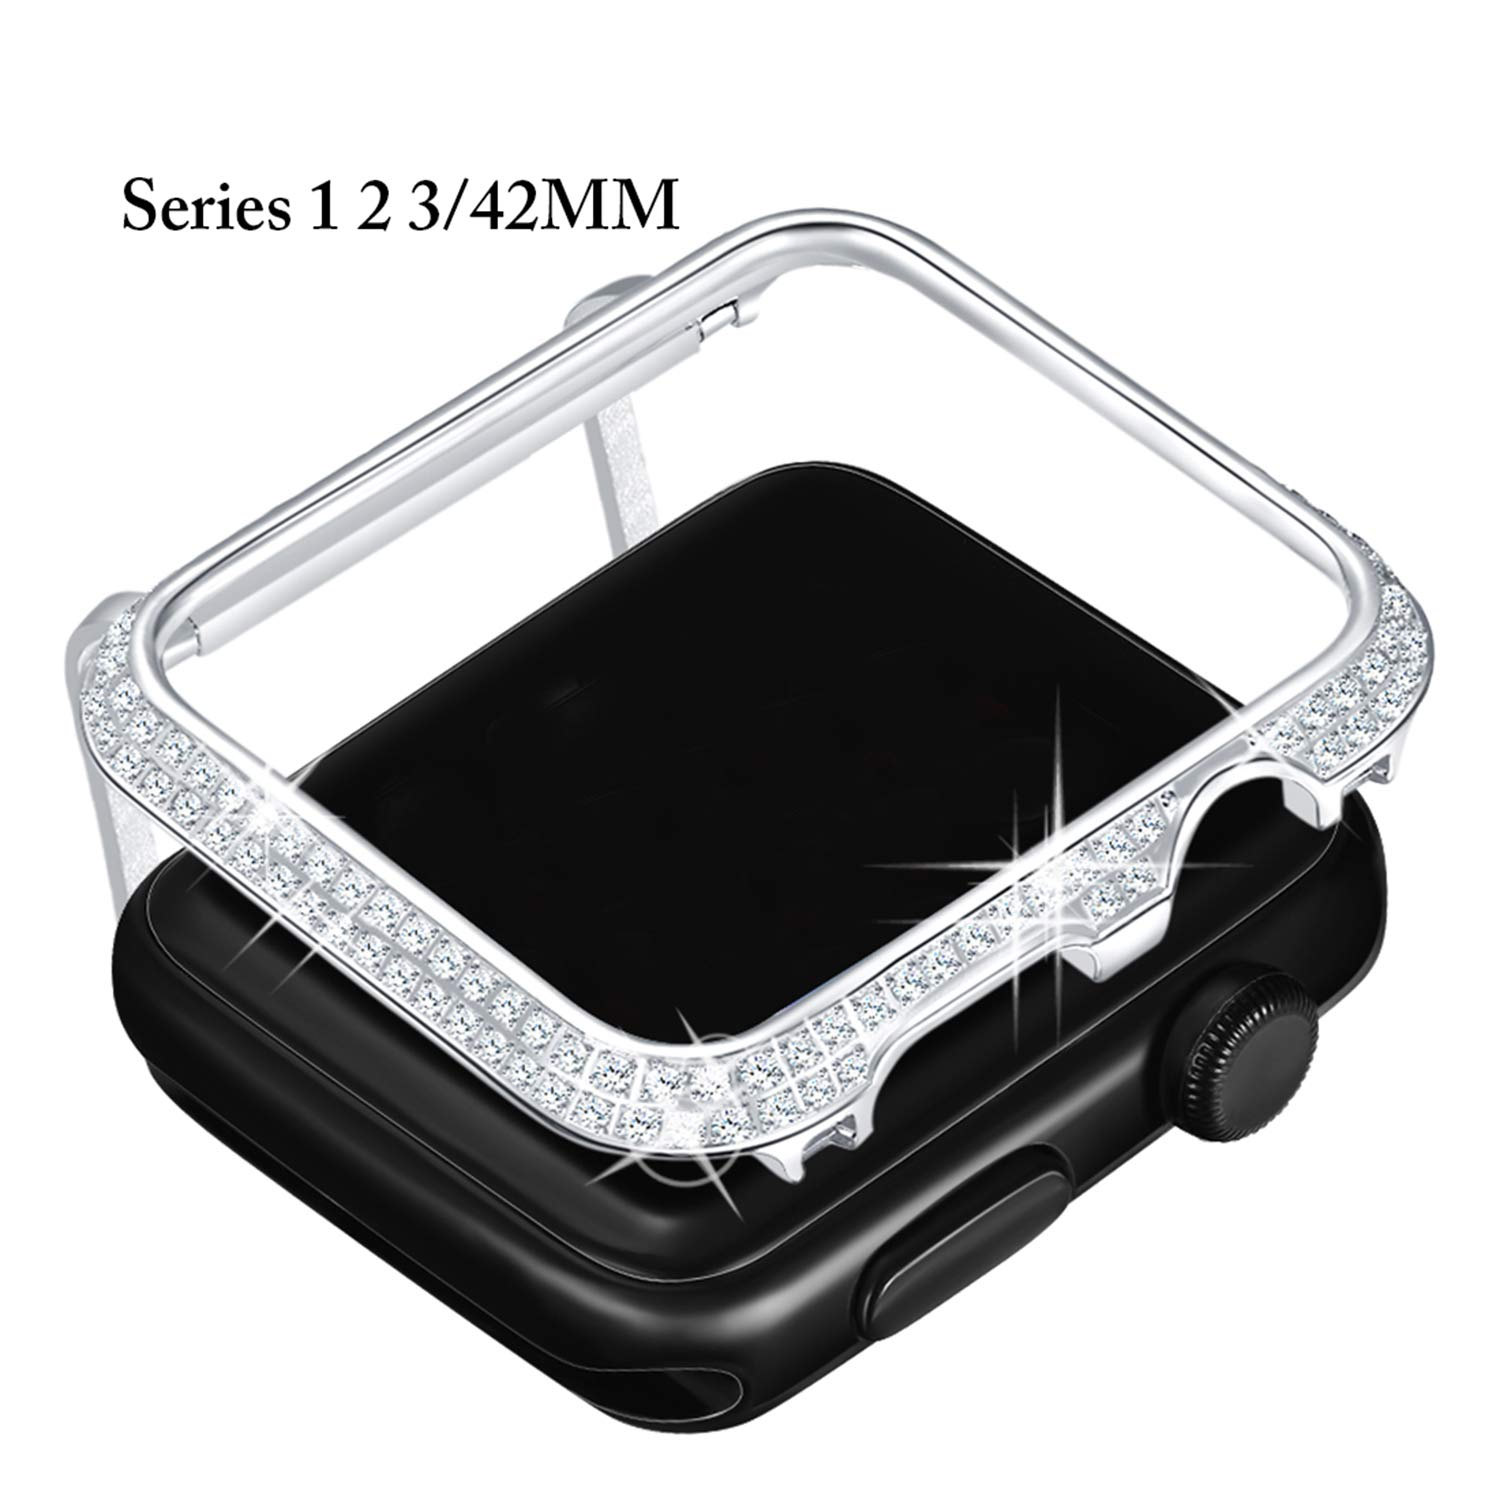 Callancity Metal Rhinestone Crystal Diamond Jewelry Bezel Case Bling Face Plate Cover Decorative Protective Frame Compatible Apple Watch 42mm Series 3 2 1(Platinum White Crystals) for Men/Women